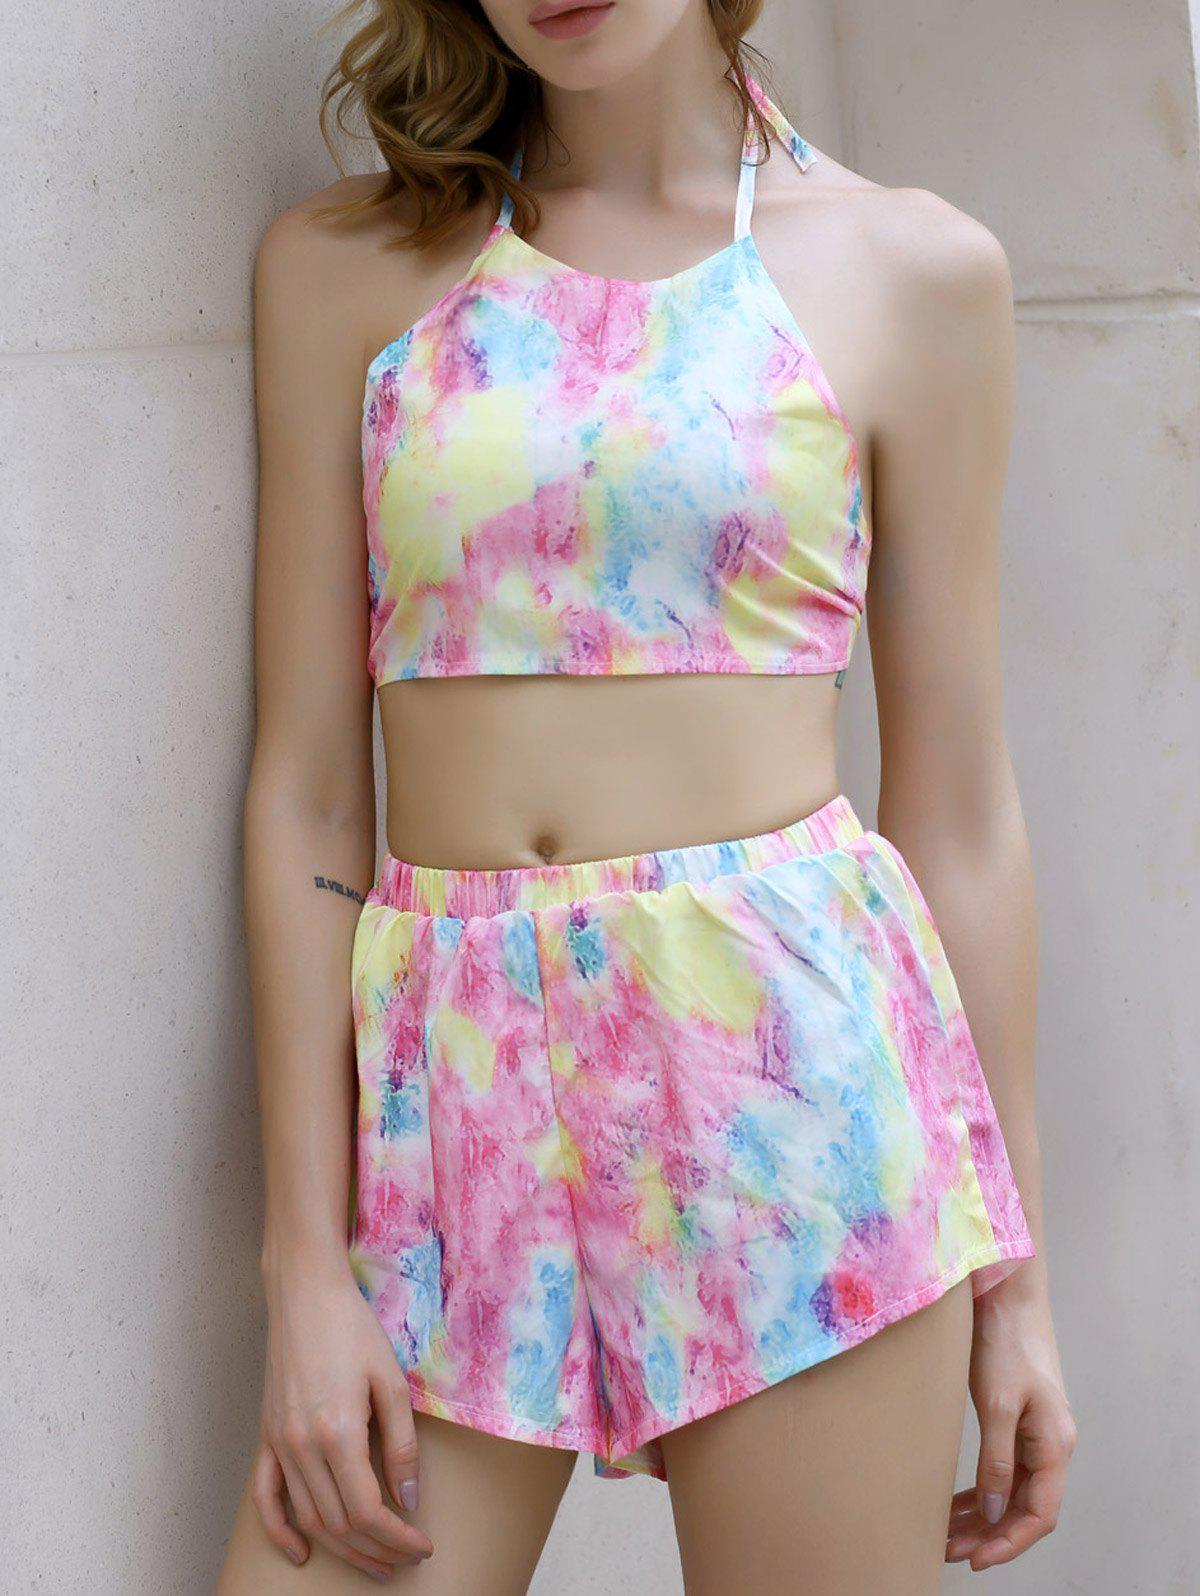 Alluring Women's Tie-Dyed Halter Crop Top + Shorts Twinset - COLORMIX M